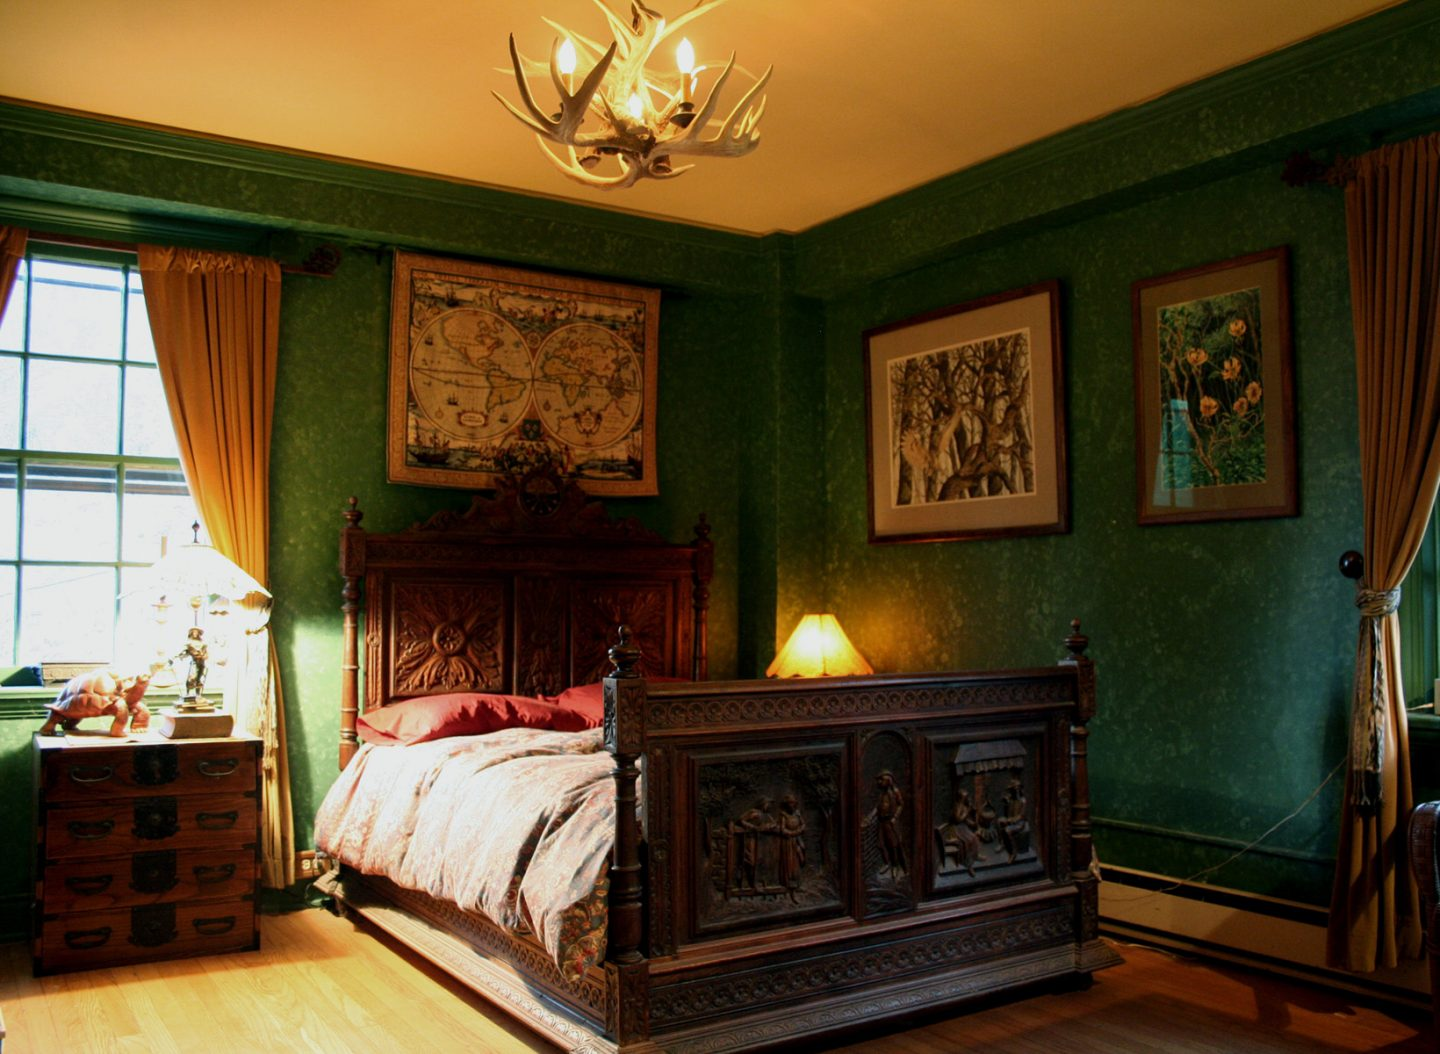 TIPS ON CREATING A MODERN GOTHIC INTERIOR DESIGN